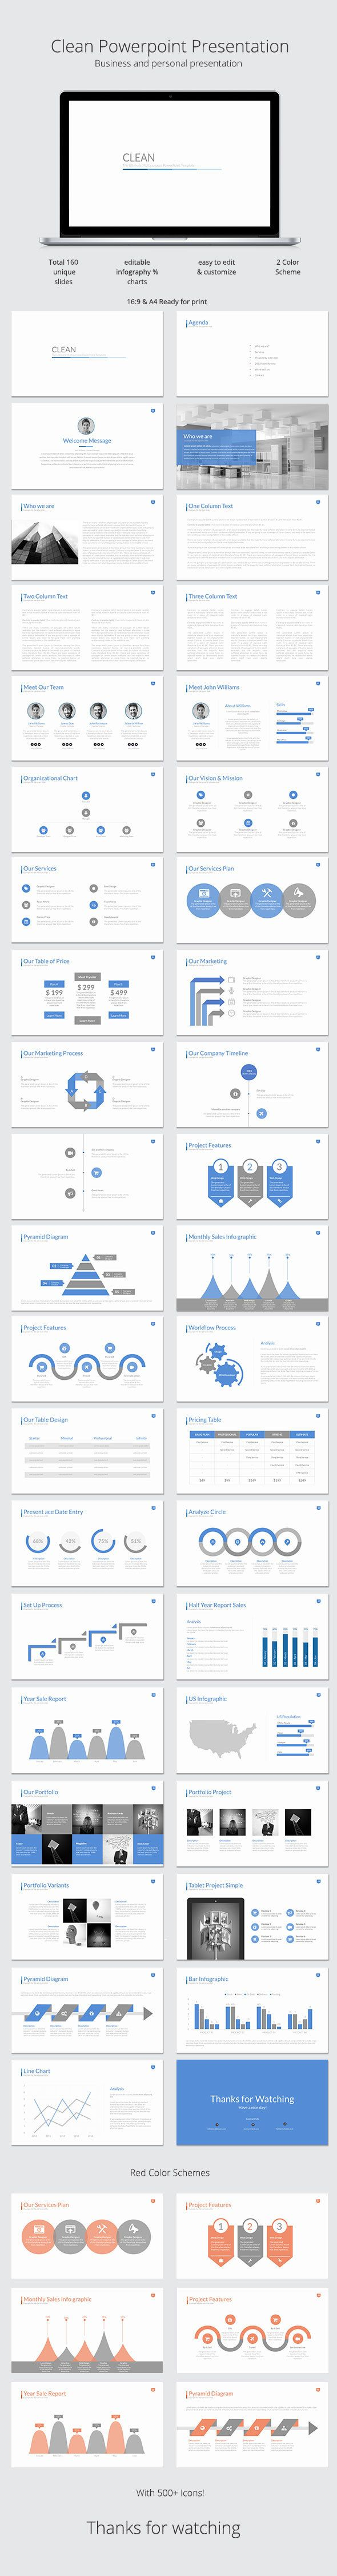 Coolmathgamesus  Winning  Ideas About Powerpoint Presentations On Pinterest With Likable Clean Powerpoint Template With Divine Converting Pdf Into Powerpoint Also Powerpoint Graphic Templates In Addition Silk Road Powerpoint And Creating Templates In Powerpoint As Well As How To Download Microsoft Powerpoint  Additionally Powerpoint Gradient Fill From Pinterestcom With Coolmathgamesus  Likable  Ideas About Powerpoint Presentations On Pinterest With Divine Clean Powerpoint Template And Winning Converting Pdf Into Powerpoint Also Powerpoint Graphic Templates In Addition Silk Road Powerpoint From Pinterestcom